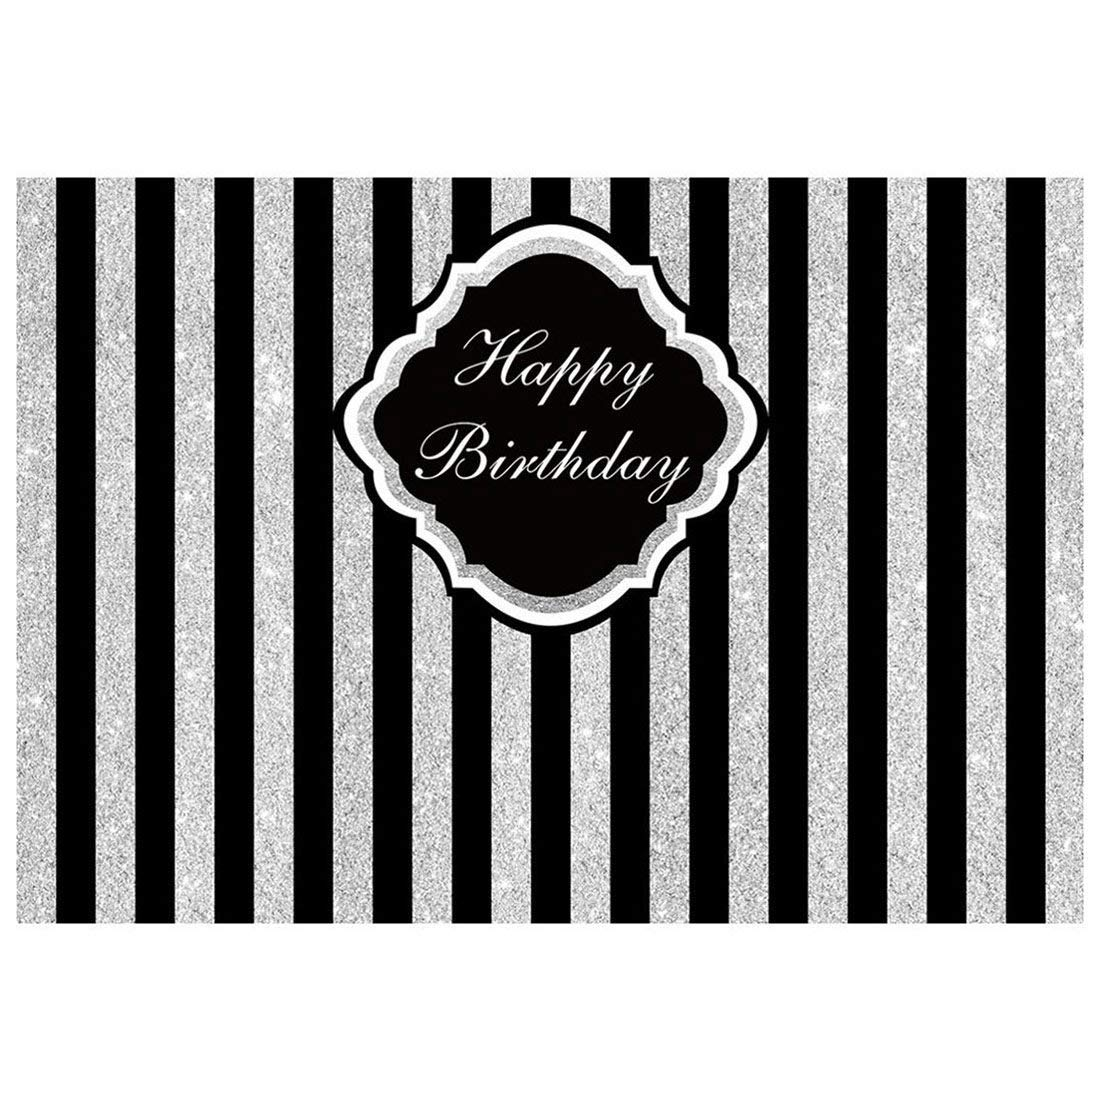 Abphoto Polyester 7x5ft Photography Backdrops Adults Children Glitter Stripes Happy Birthday Party Banner Studio Booth Background Silver Black Walmart Com Walmart Com